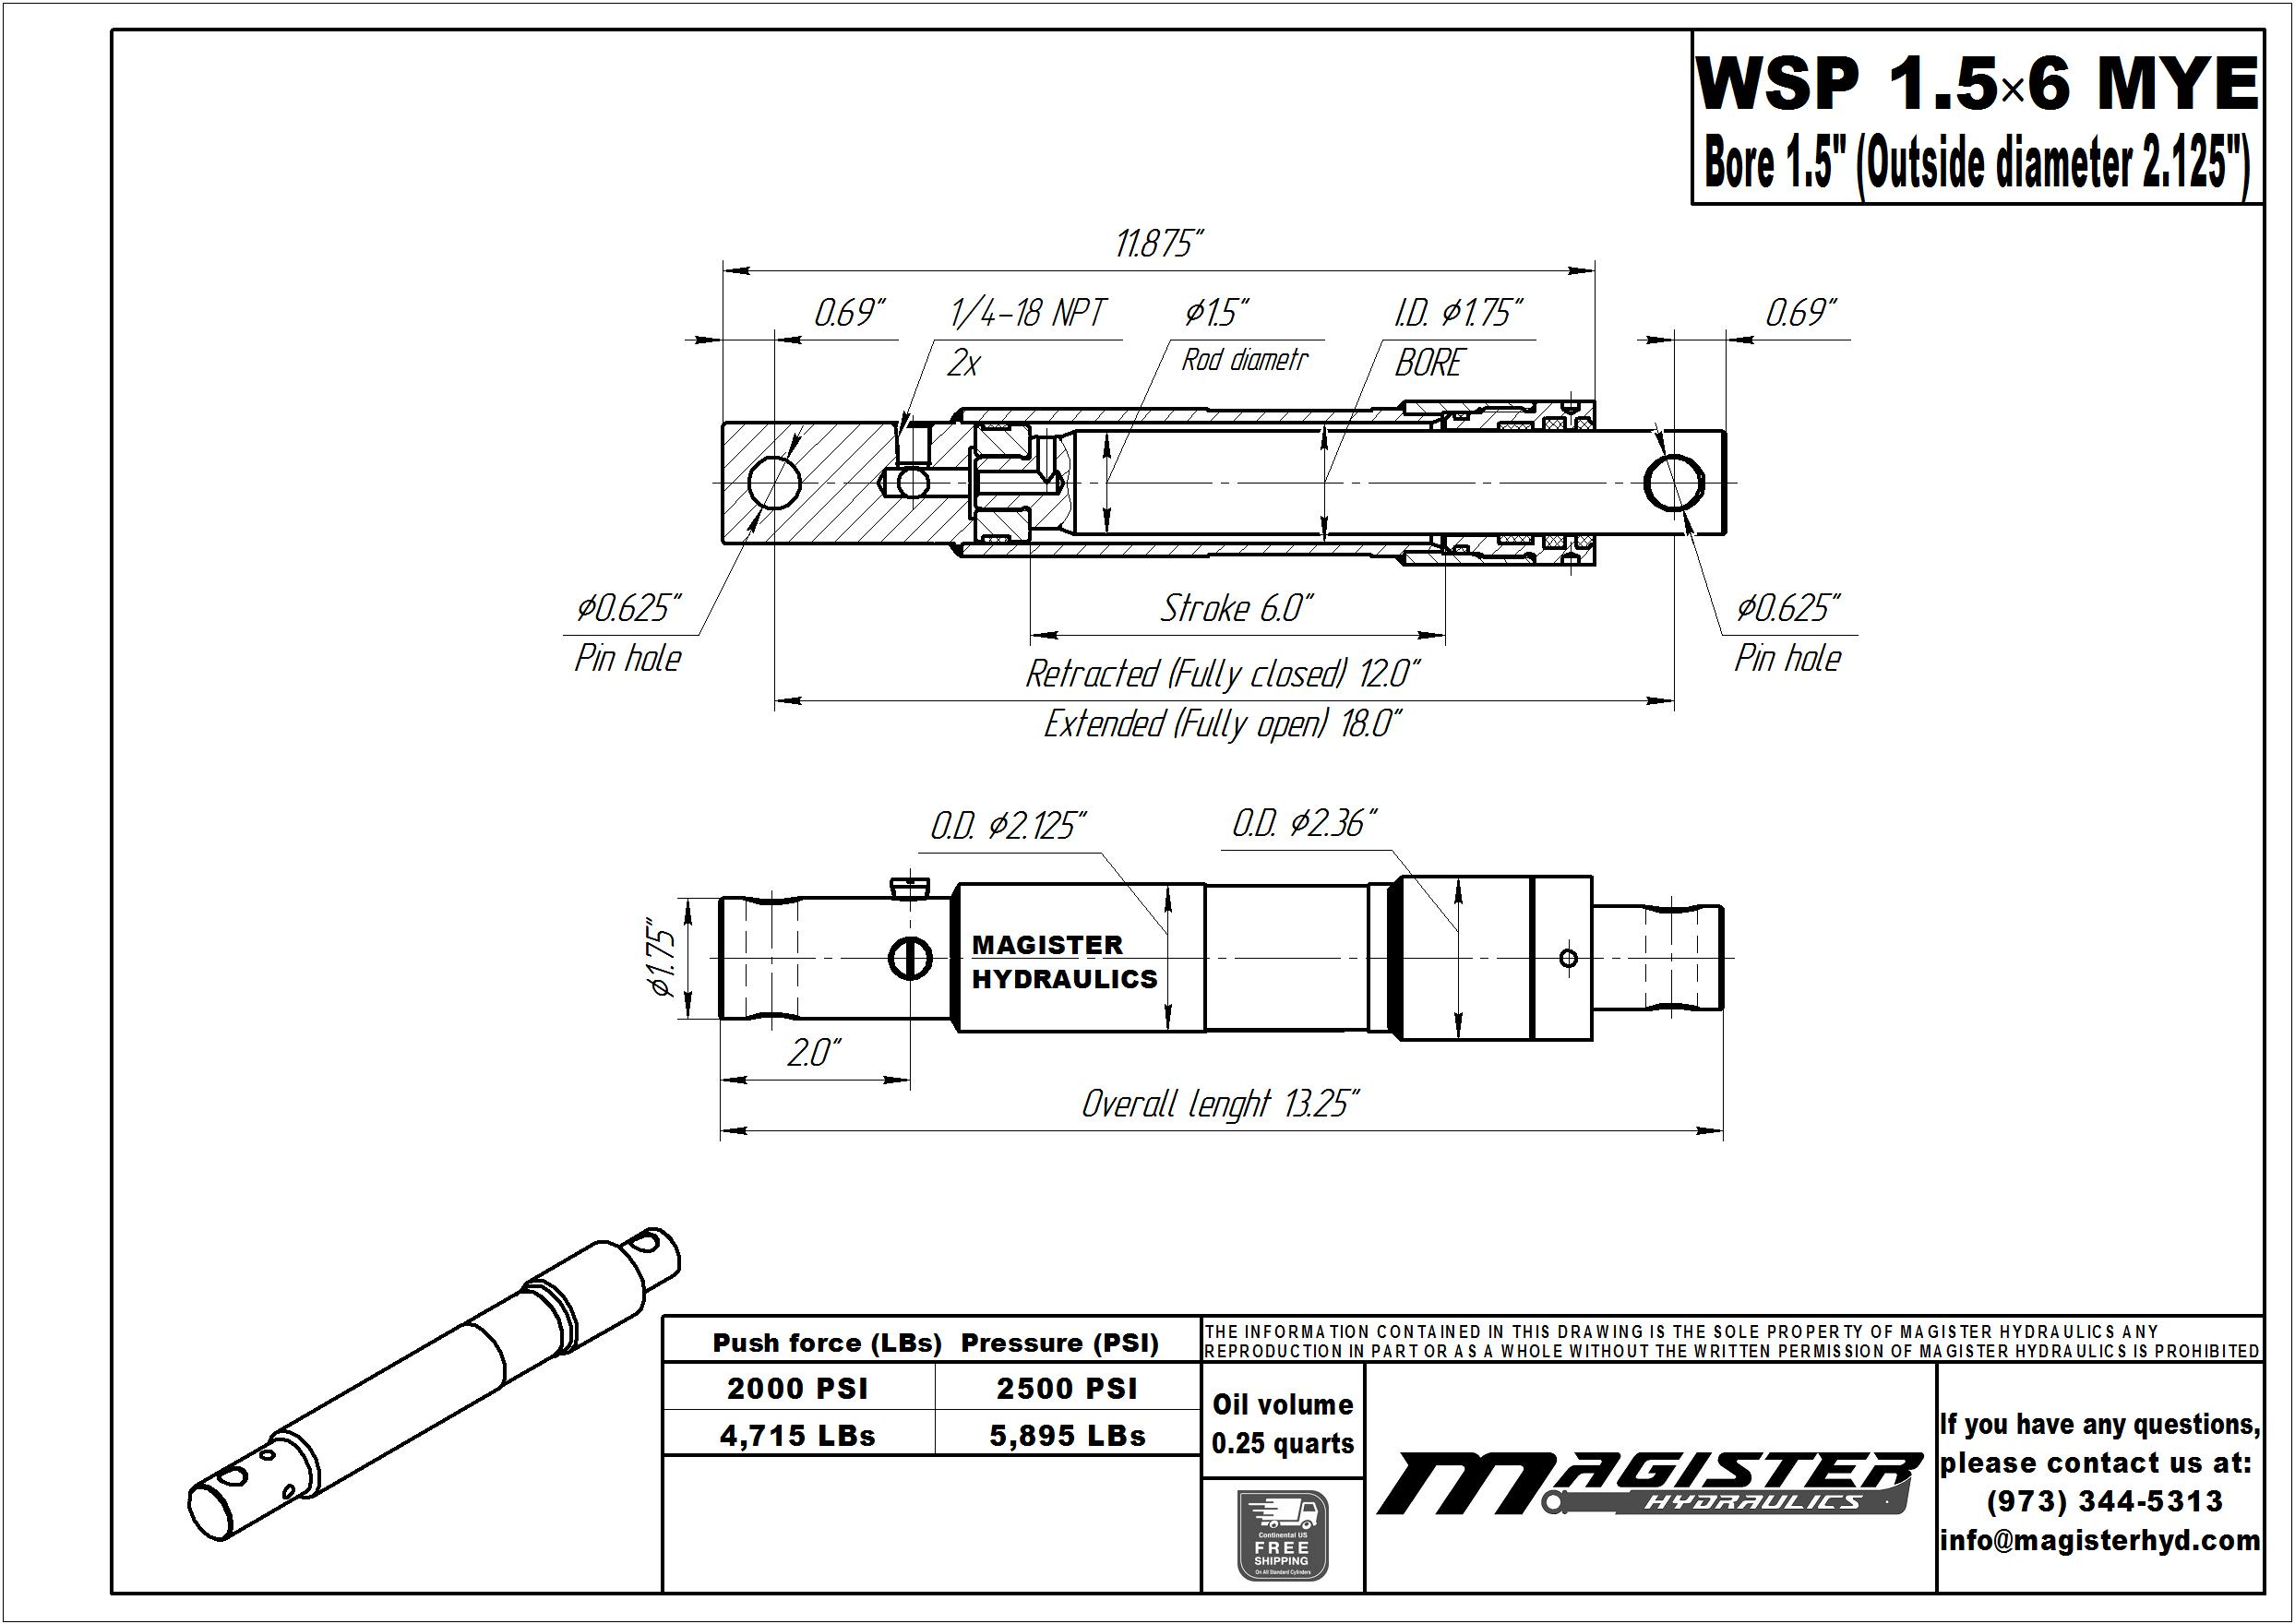 1.5 bore x 6 stroke hydraulic cylinder Meyers, welded snow plow single acting cylinder   Magister Hydraulics